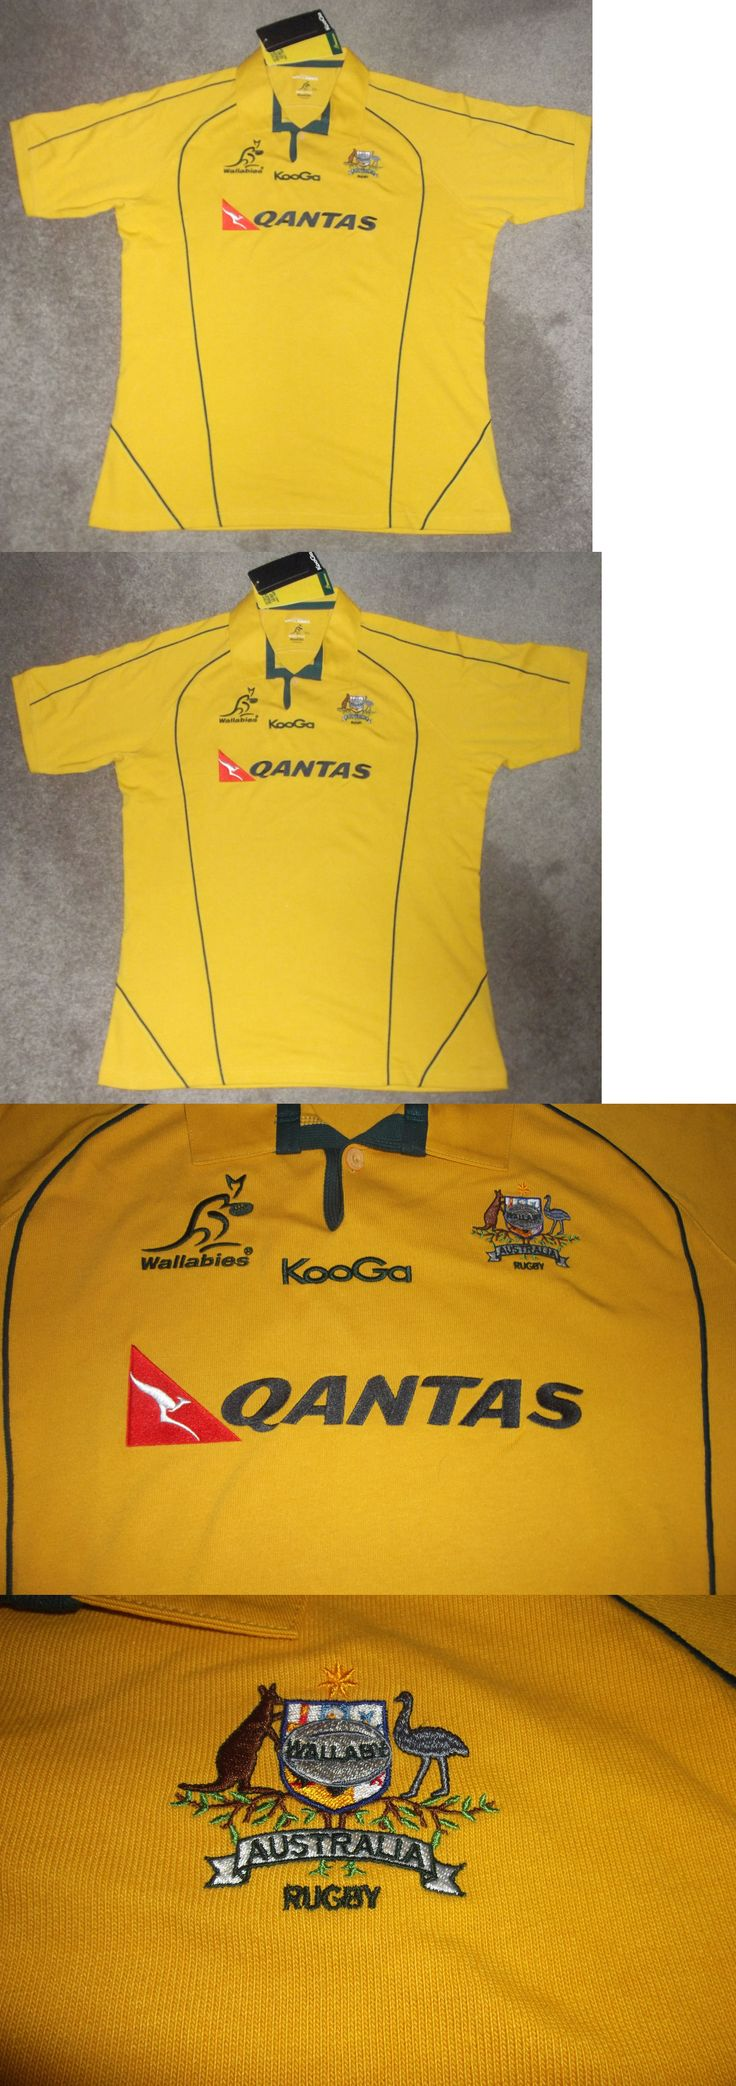 Rugby 21563: Kooga Gold Traditional Jersey Wallabies 2011 Ss Australia Rugby Gear Polo 3Xl -> BUY IT NOW ONLY: $64.99 on eBay!